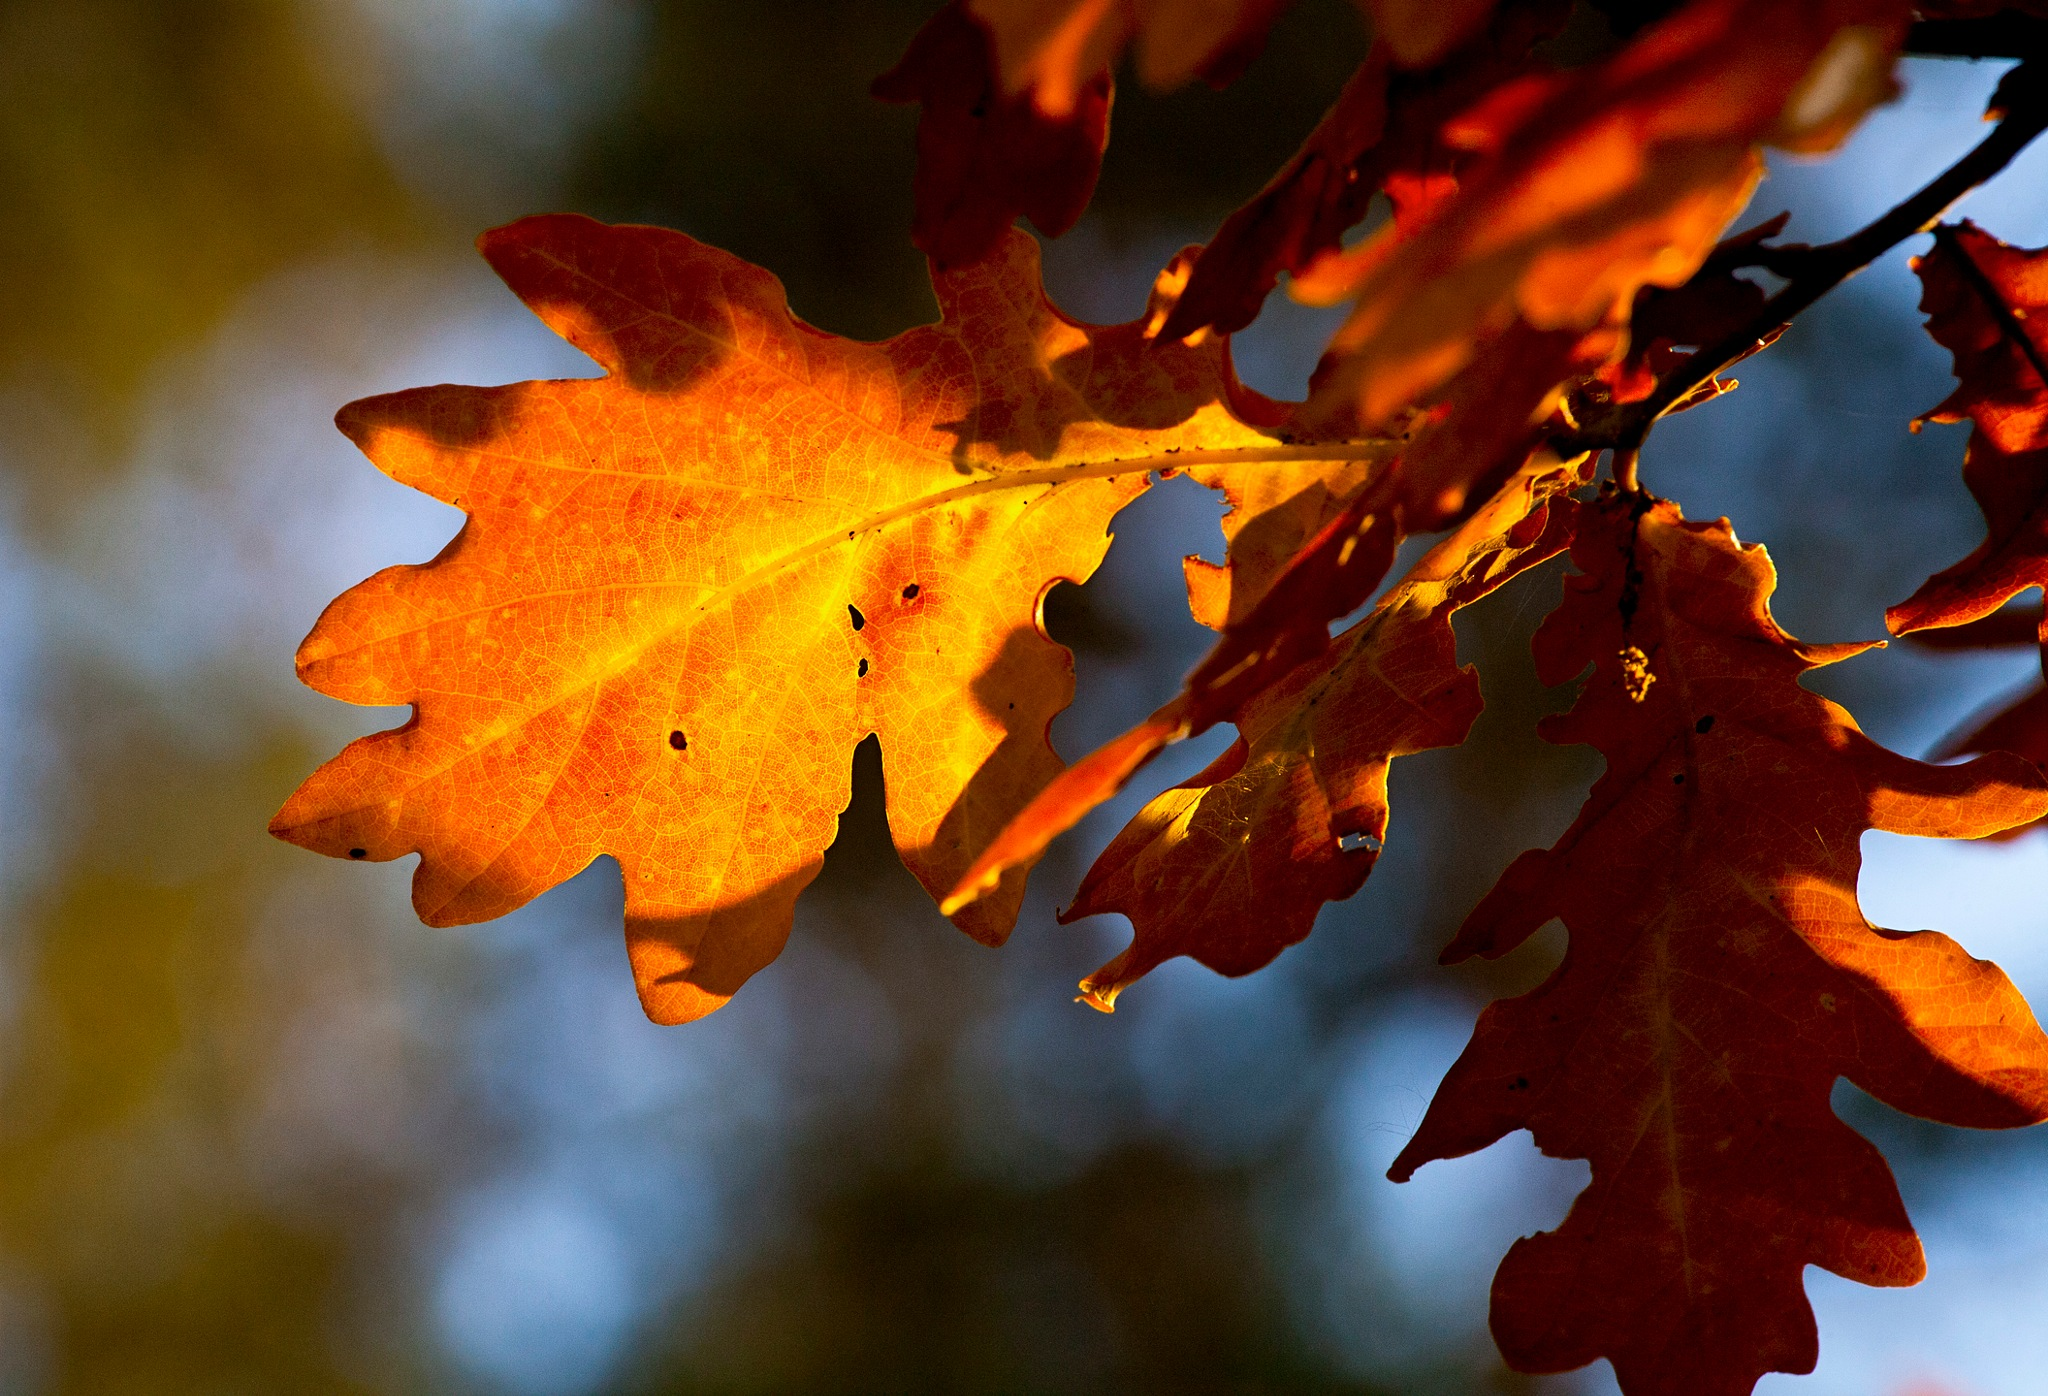 Autumn leaves by Paw